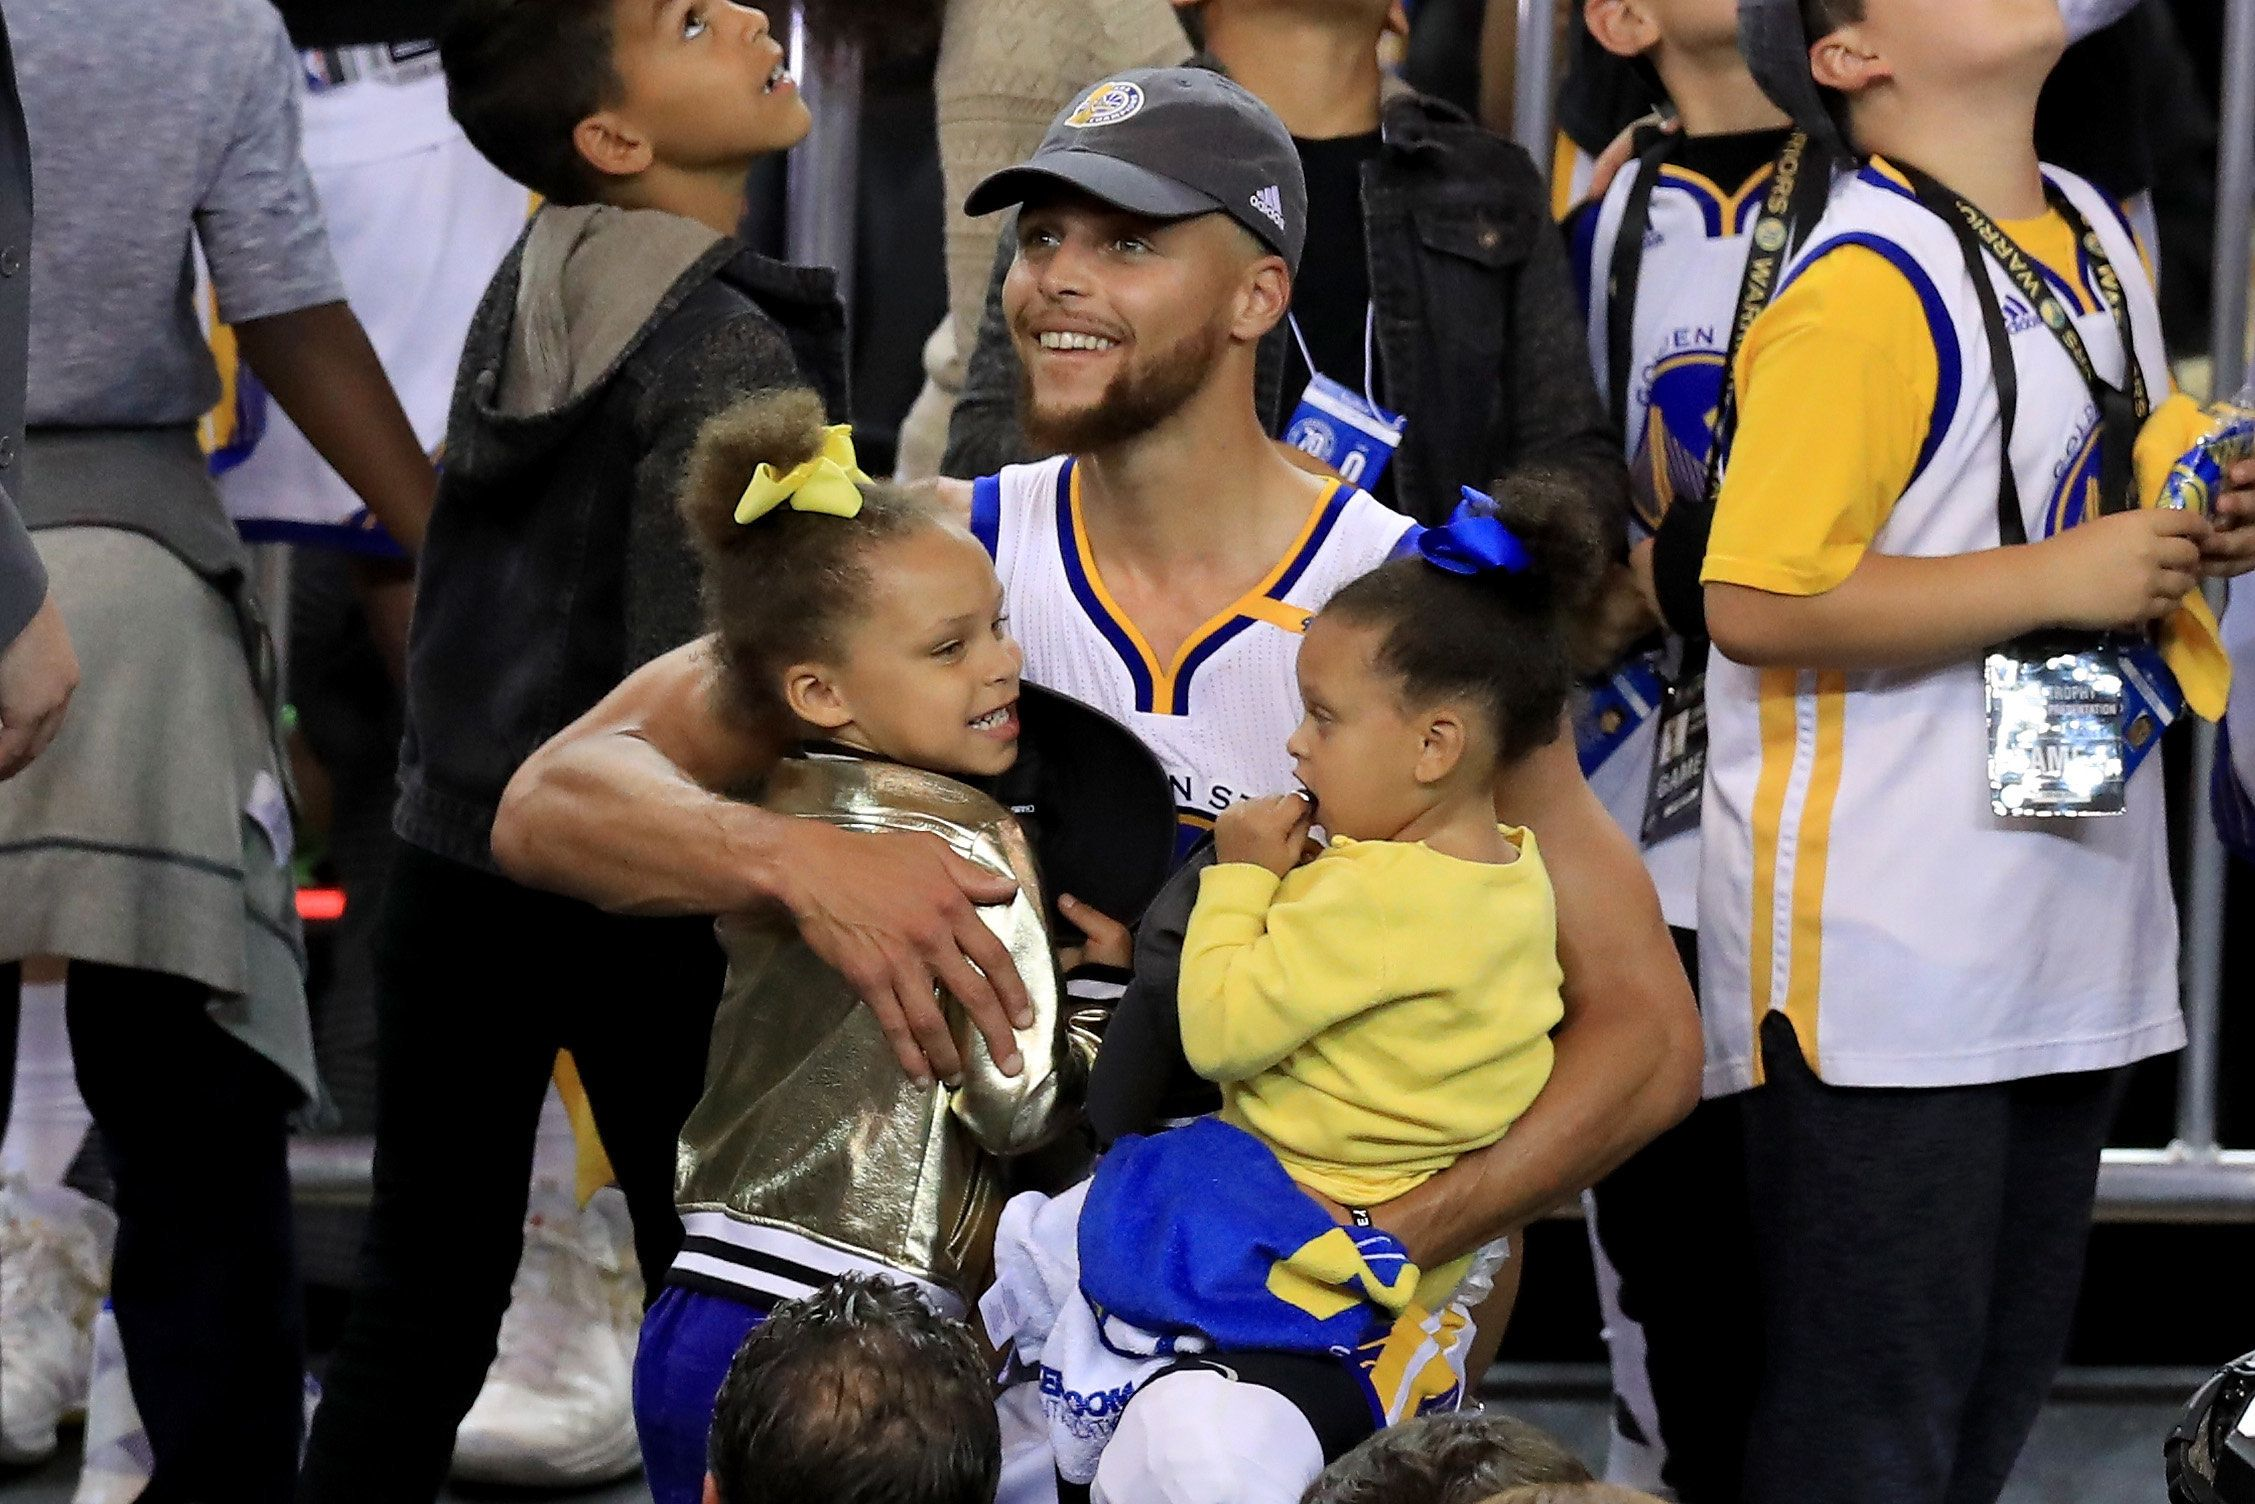 OAKLAND, CA - JUNE 12:  Stephen Curry #30 of the Golden State Warriors celebrates holding his daughters Riley and Ryan after defeating the Cleveland Cavaliers 129-120 in Game 5 to win the 2017 NBA Finals at ORACLE Arena on June 12, 2017 in Oakland, California. NOTE TO USER: User expressly acknowledges and agrees that, by downloading and or using this photograph, User is consenting to the terms and conditions of the Getty Images License Agreement.  (Photo by Ronald Martinez/Getty Images)